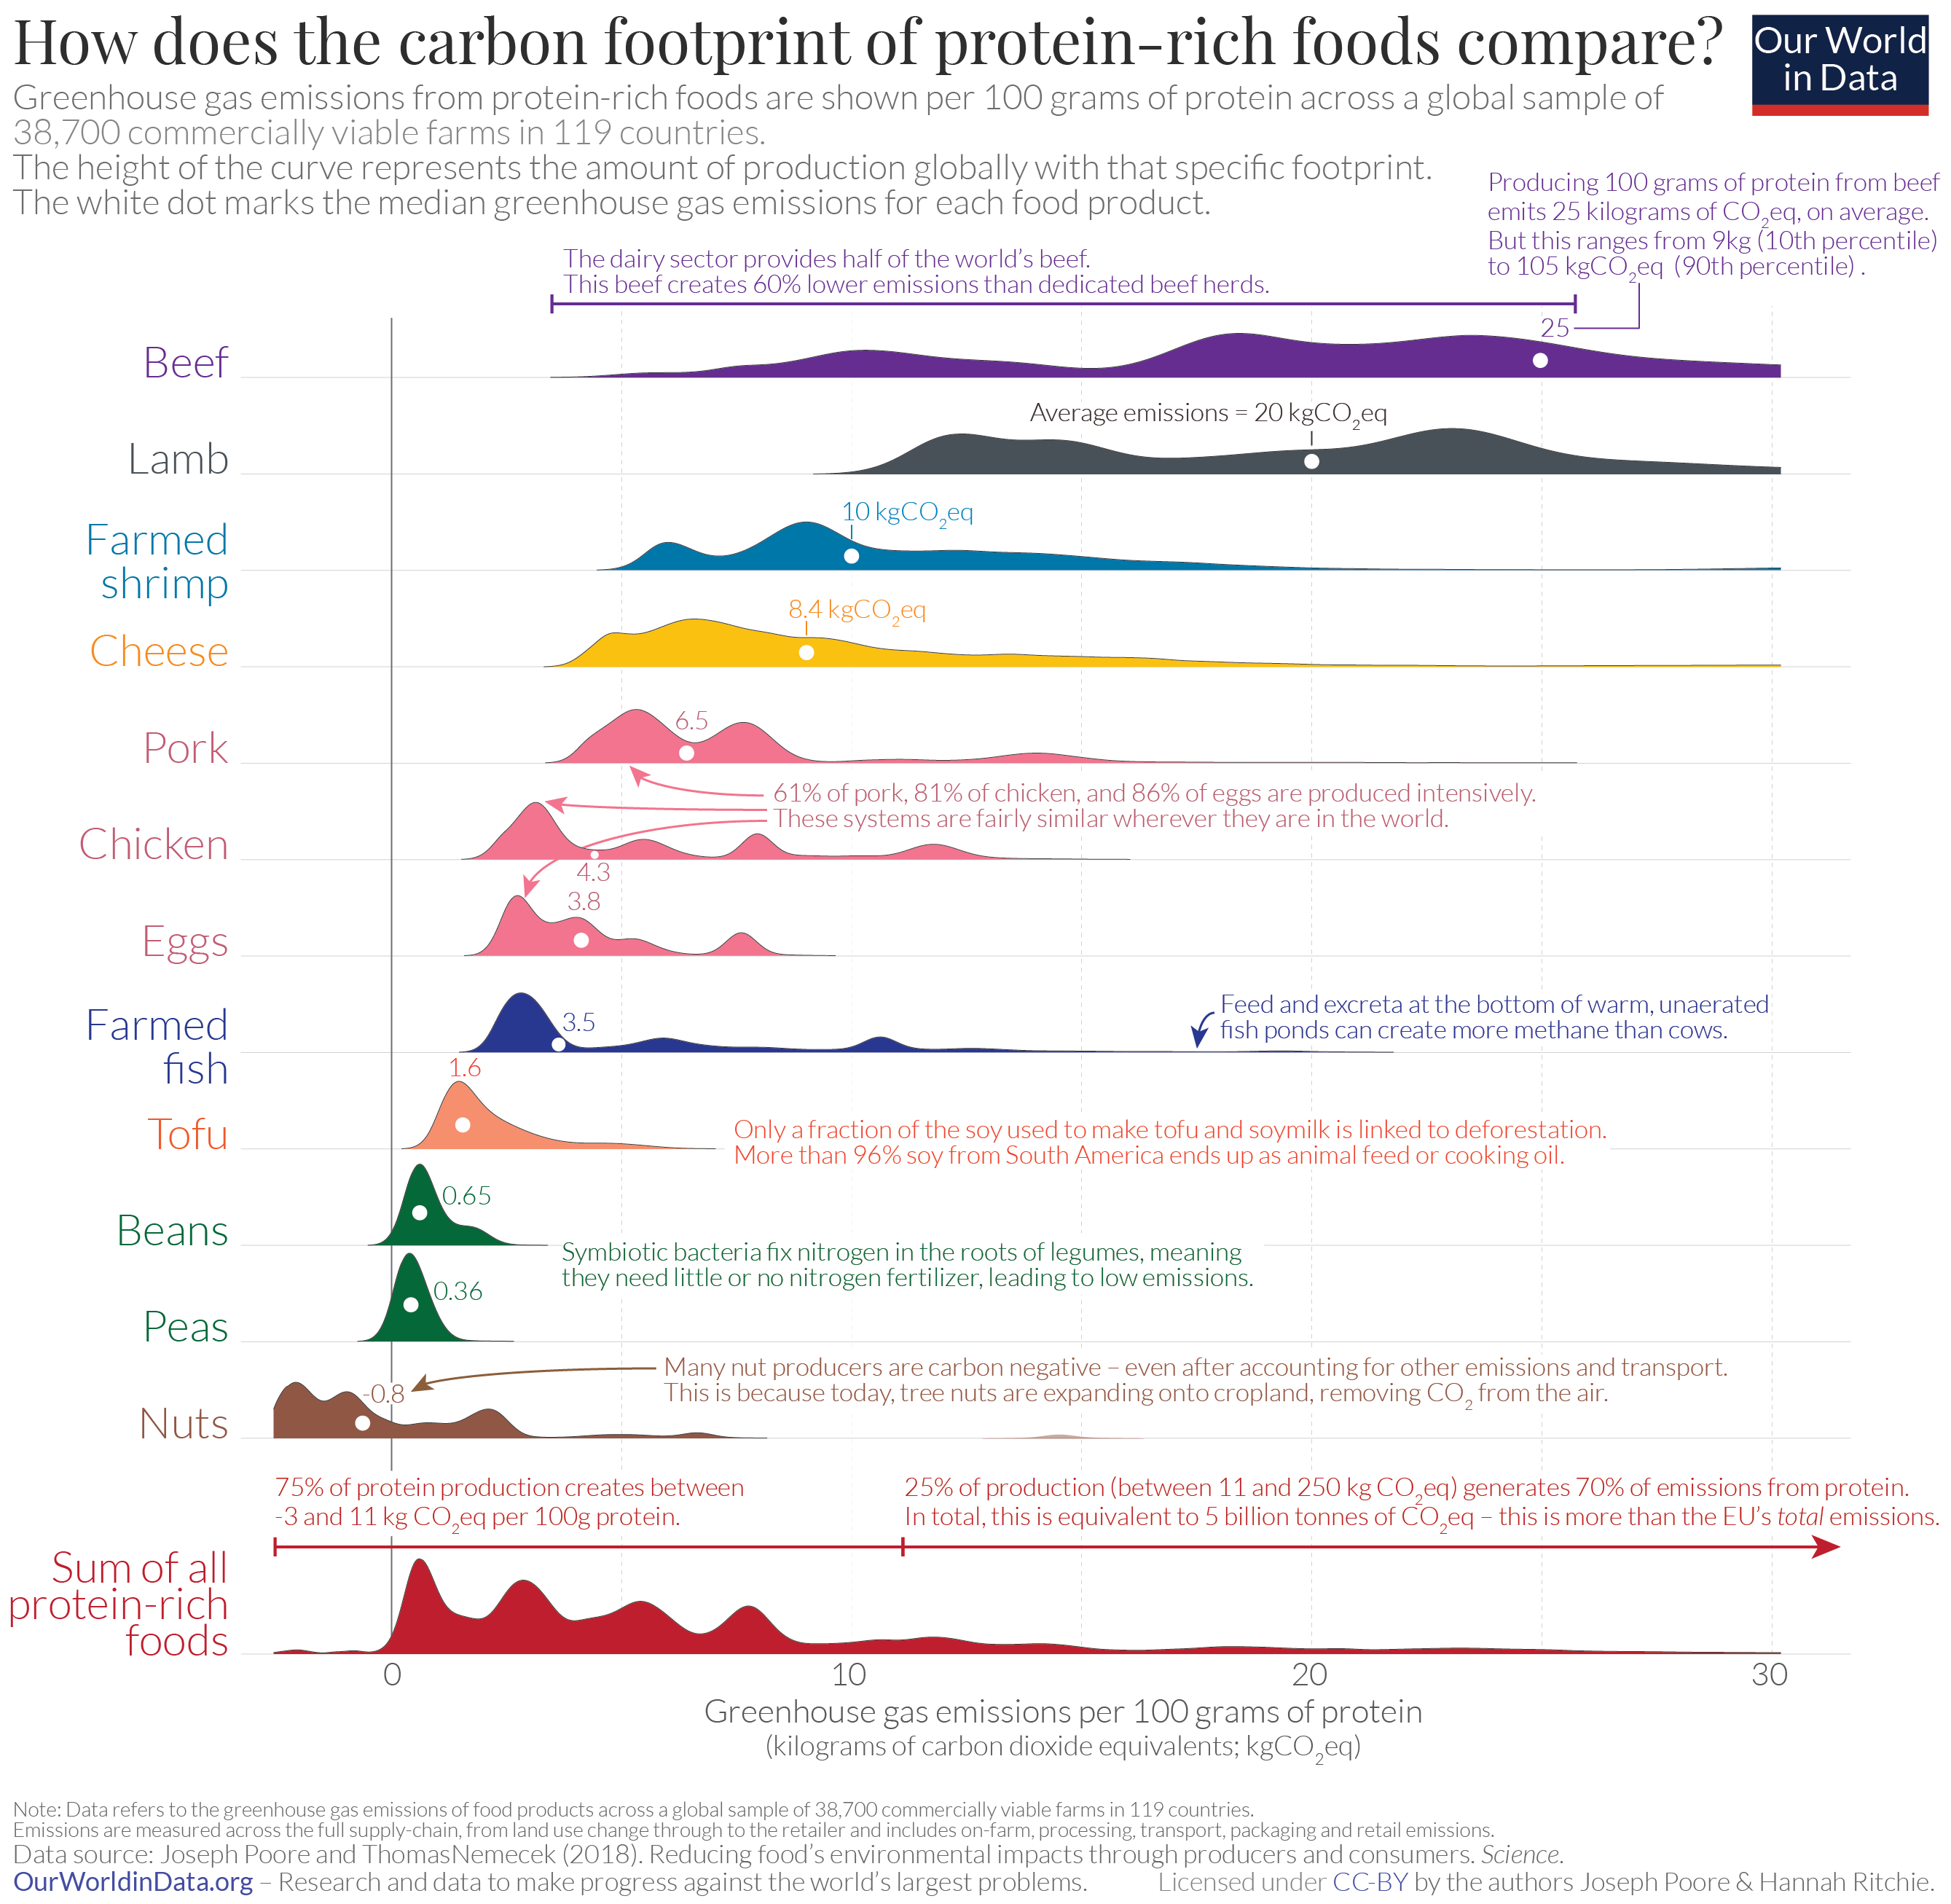 Animal products emit significantly more carbon emissions than plant-based foods, regardless of how they are produced. Source: Our World in Data.